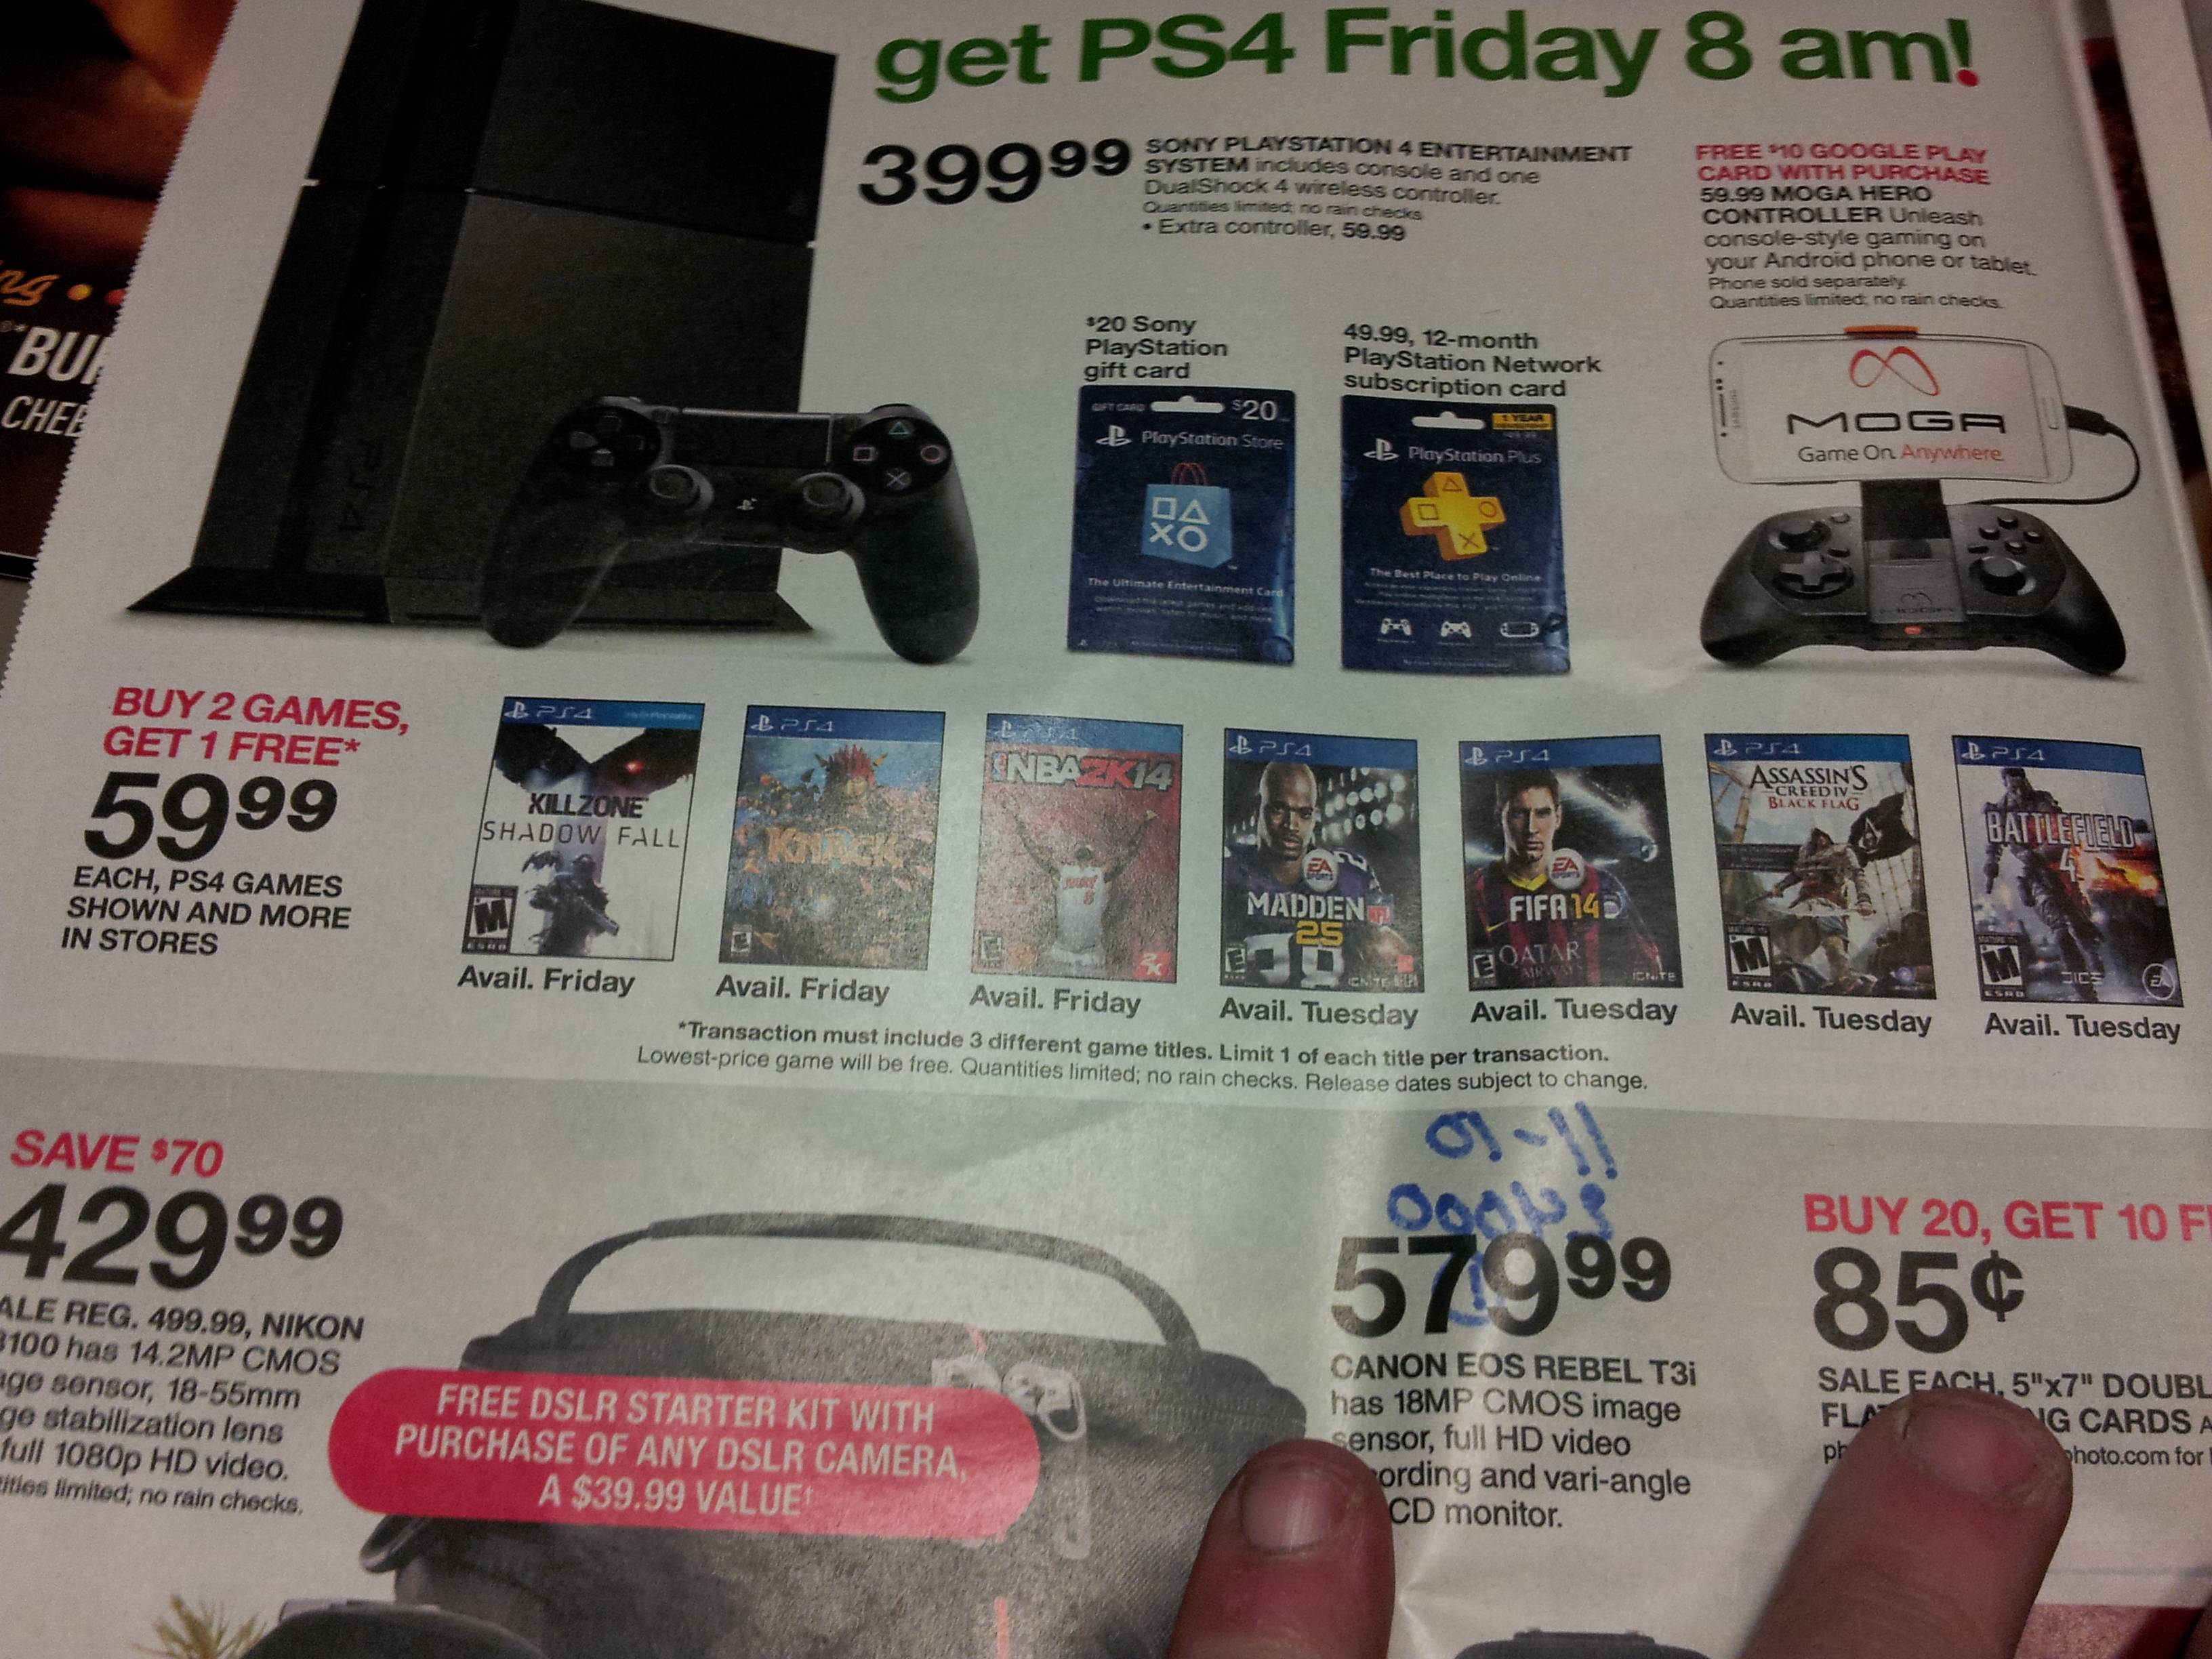 Games That Come With The Ps4 : Ps launch games to be buy get free at target on